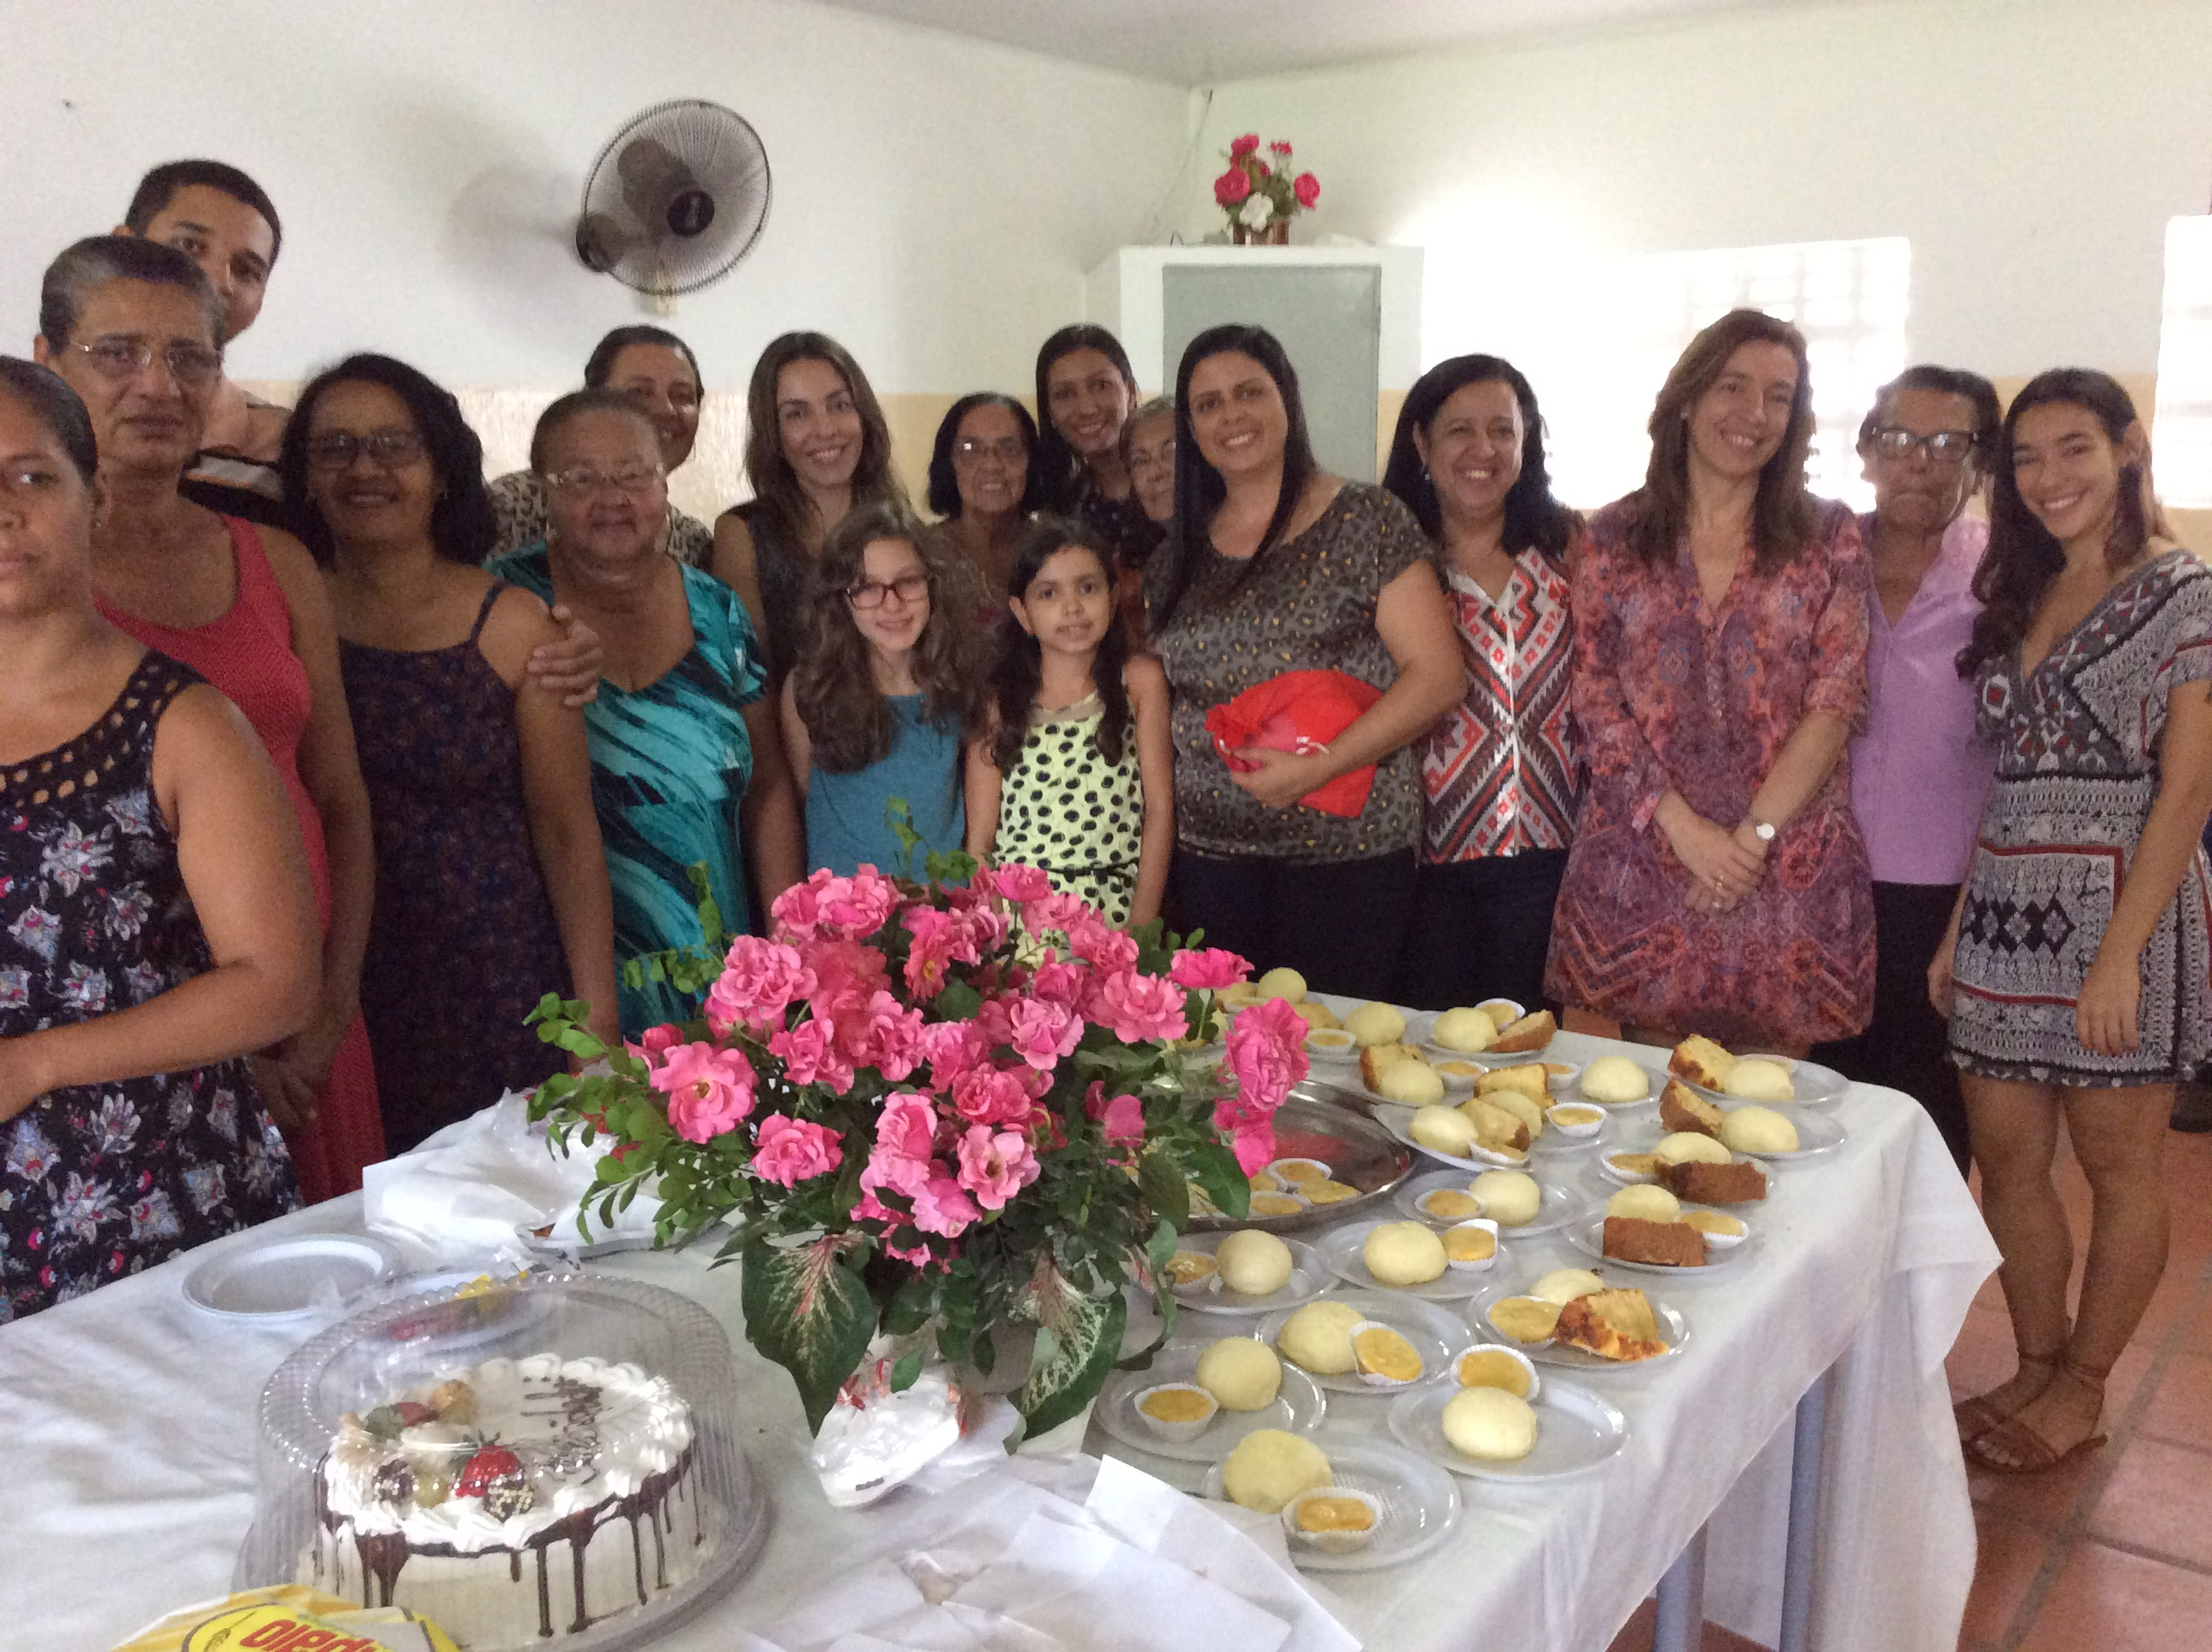 There were so many mothers in a small room that we couldn't fit them into one picture! These two pictures are of the mothers and children at the party.